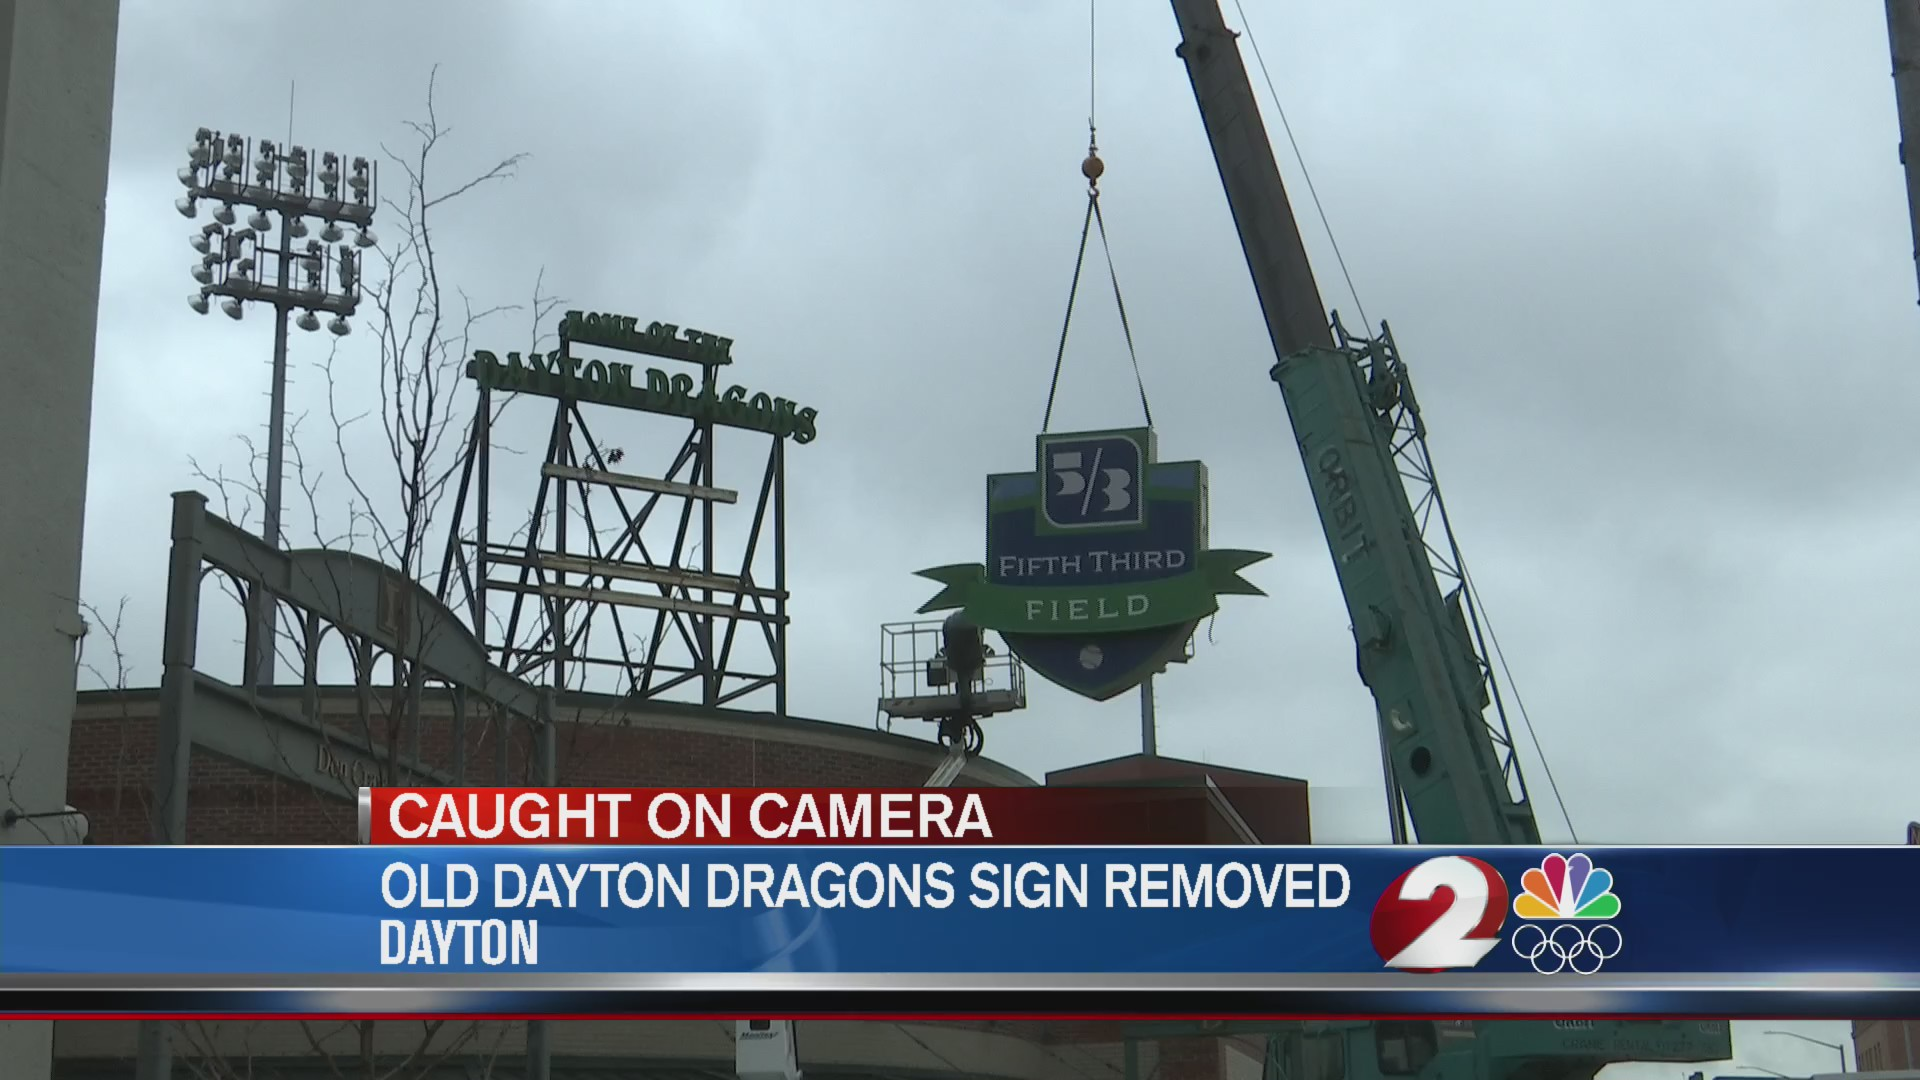 Old Dayton Dragons sign removed